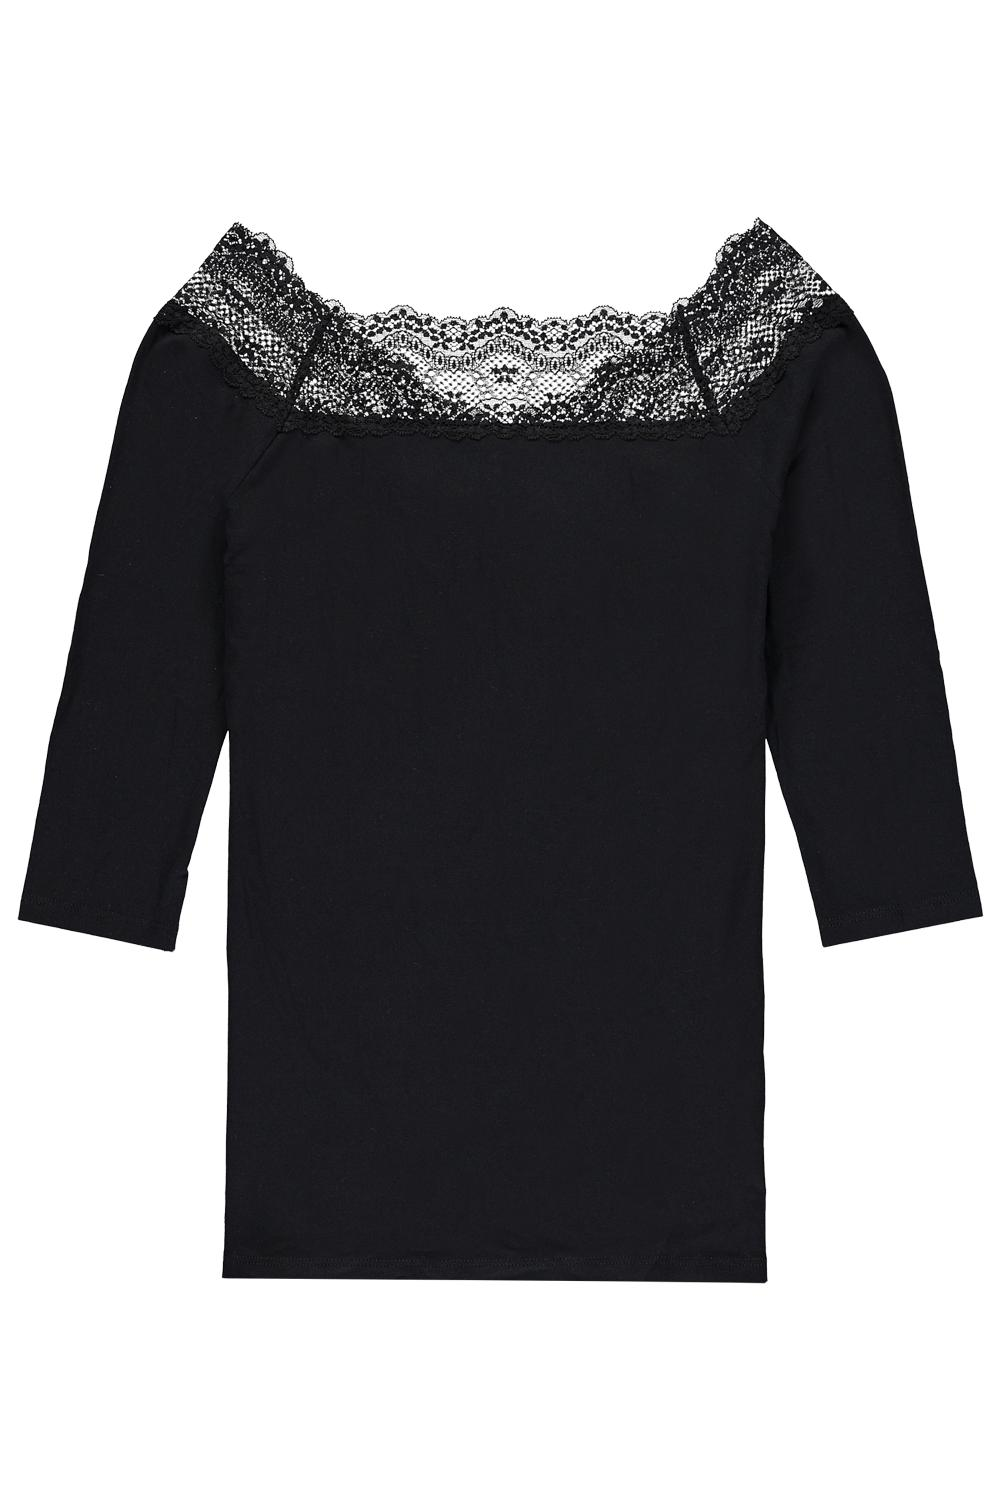 3/4 Sleeve Off-The-Shoulder Lace Top